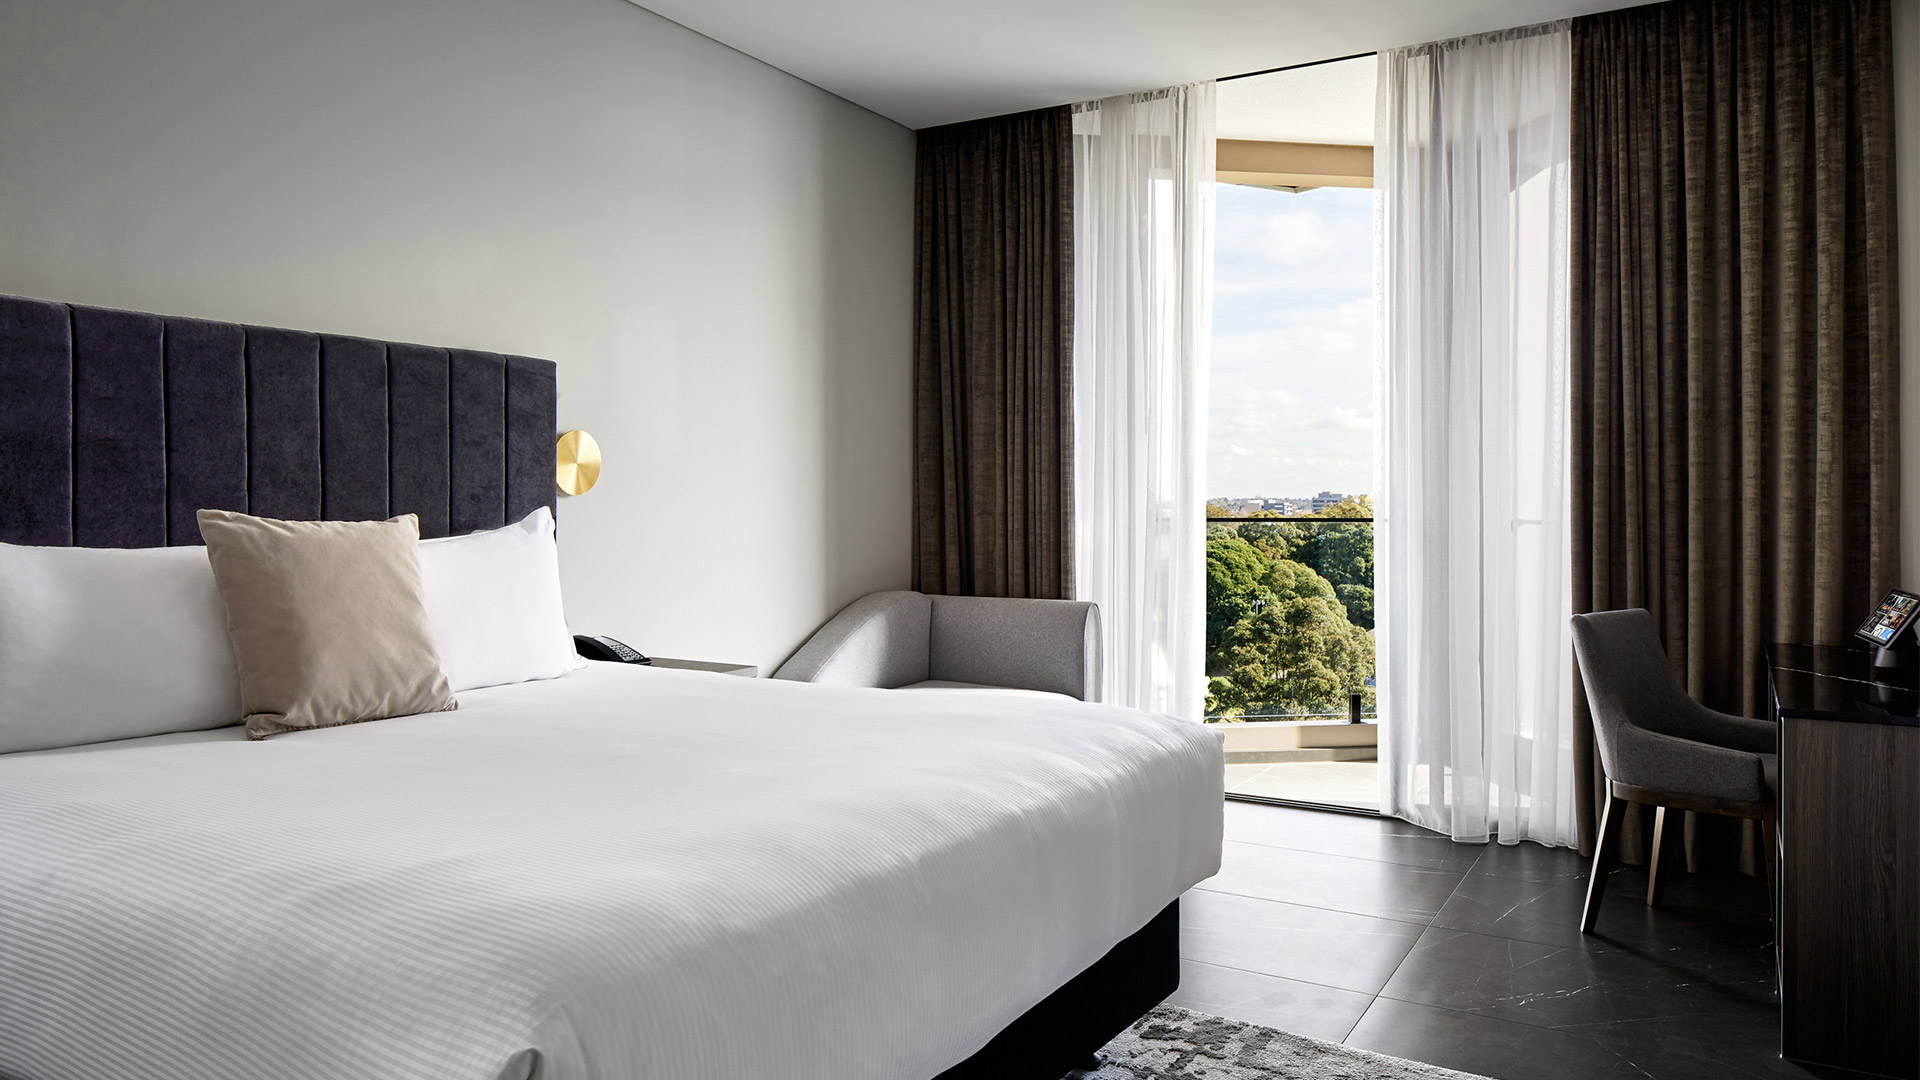 Conquest™ Crowne Plaza bedroom view